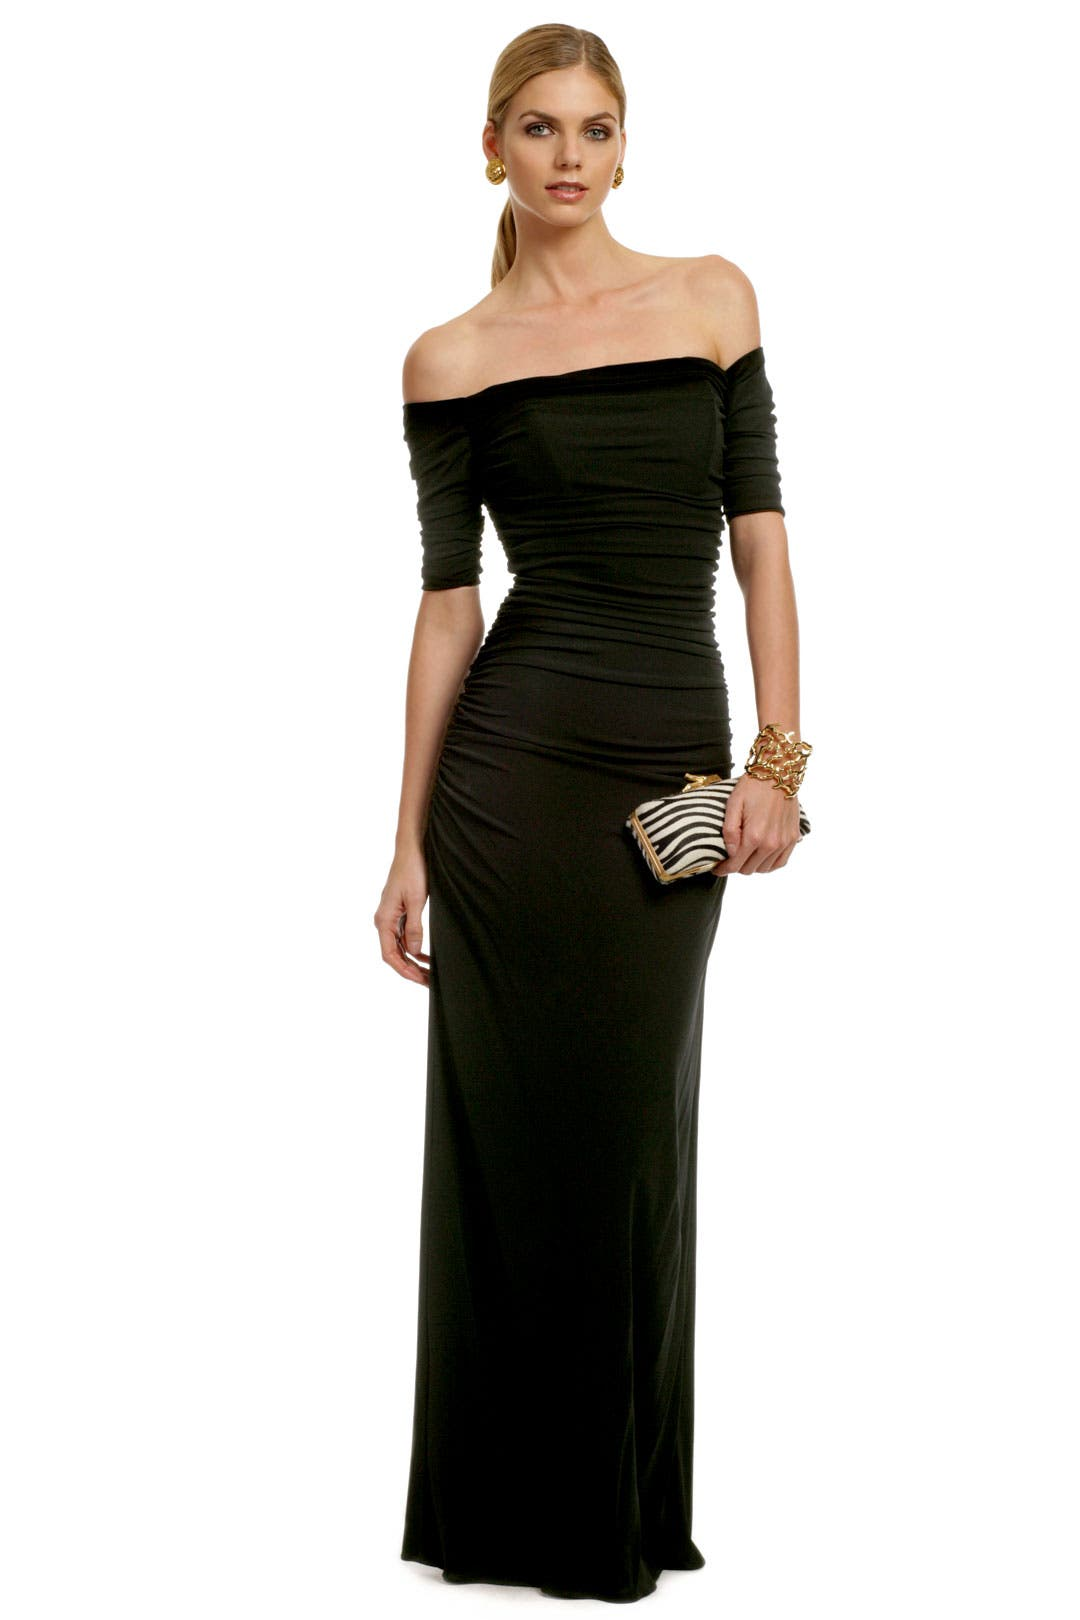 Belle of the Ball Gown by Badgley Mischka